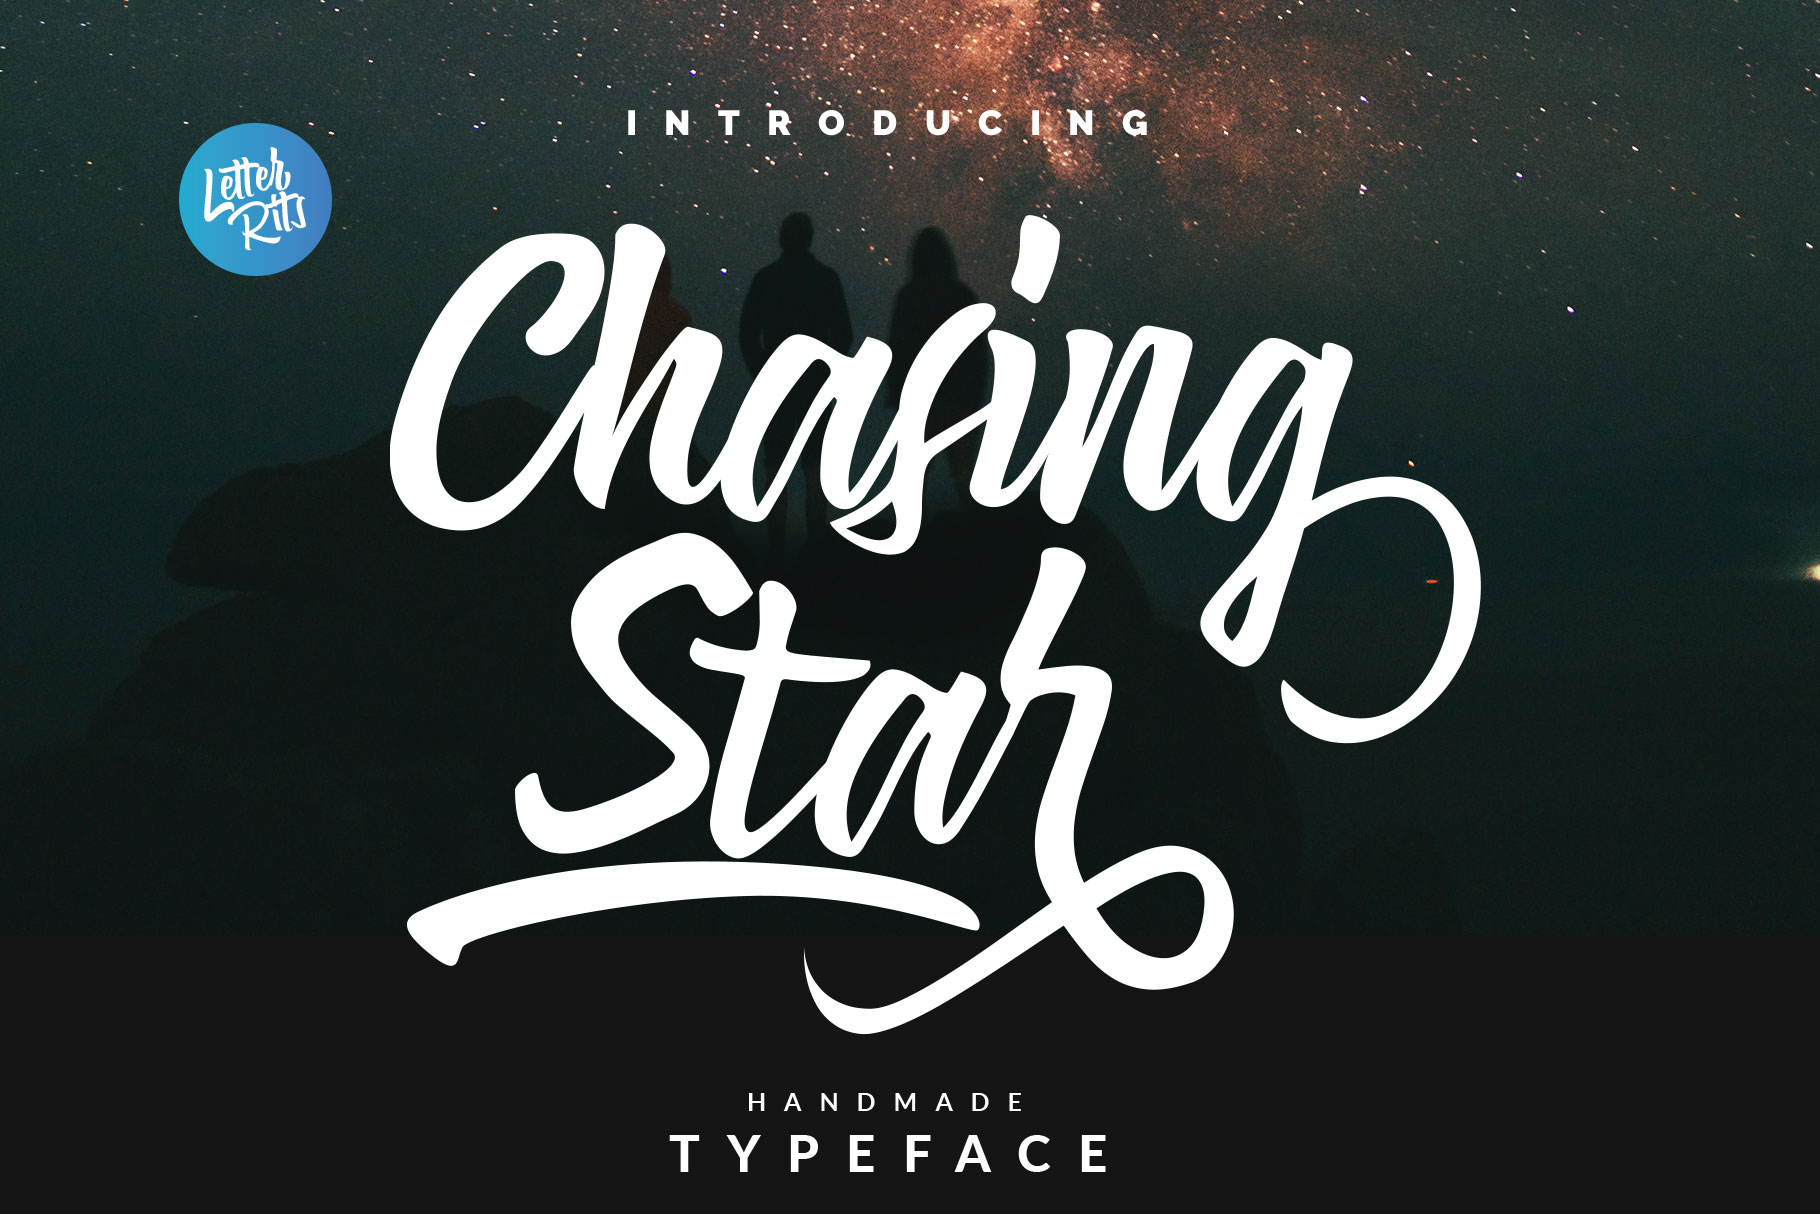 Chasing Start Font example image 1